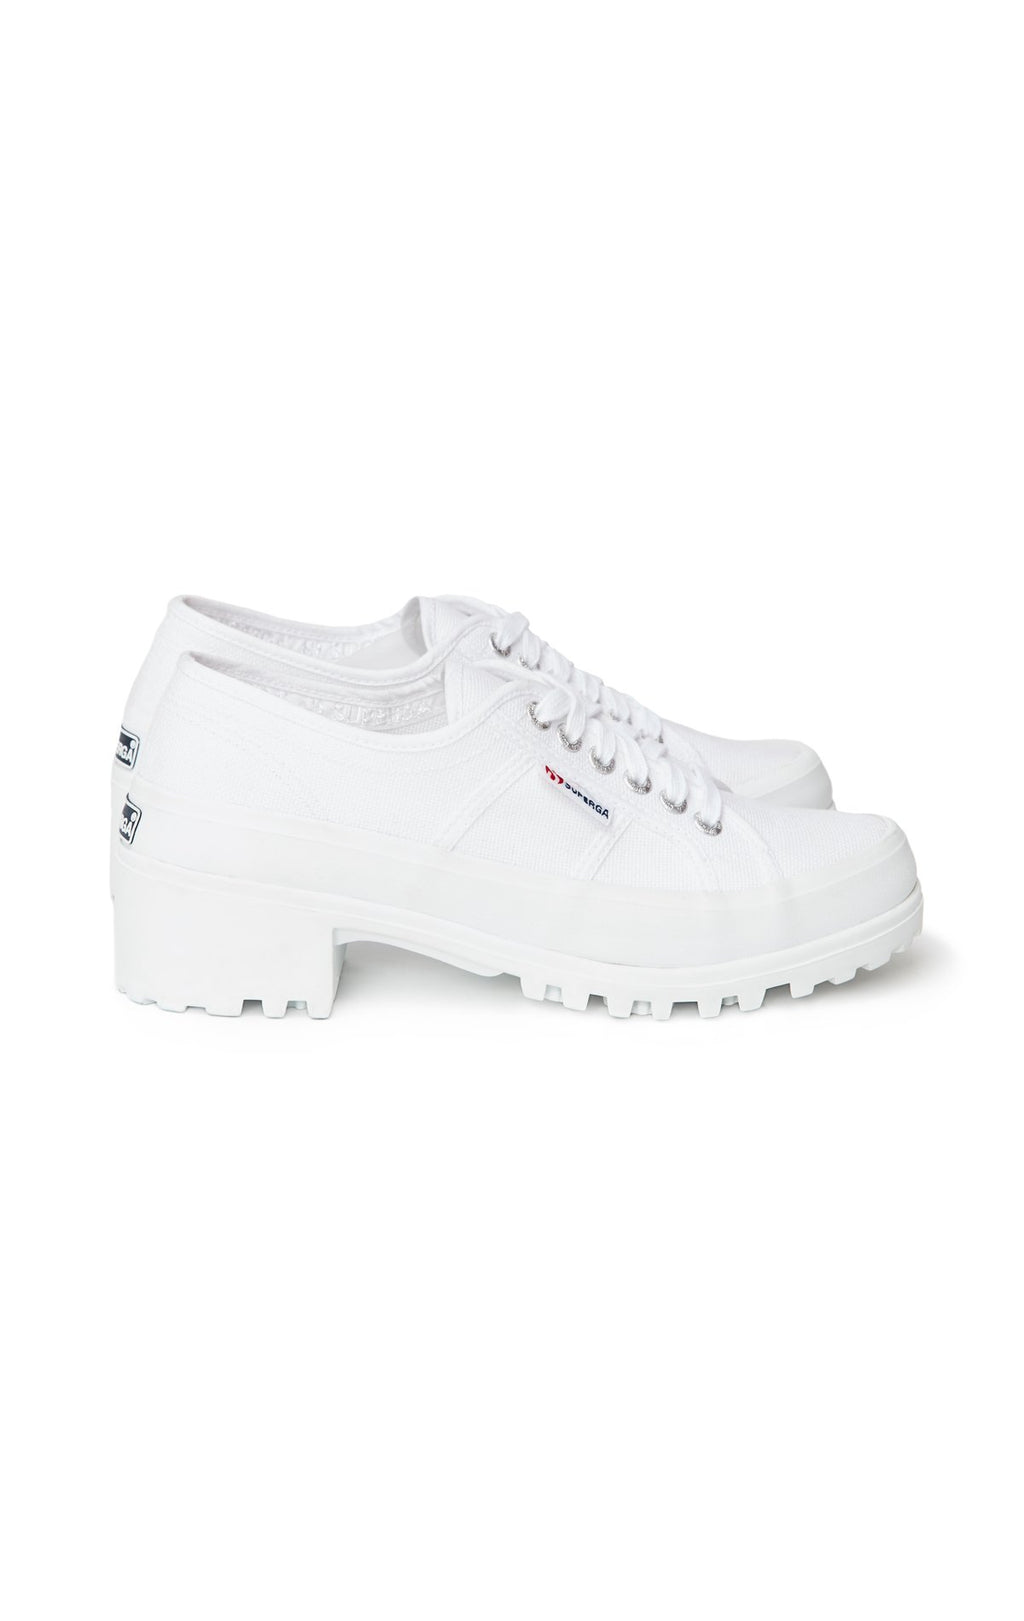 SUPERGA SNEAKER WITH RUBBER HEEL SIDE